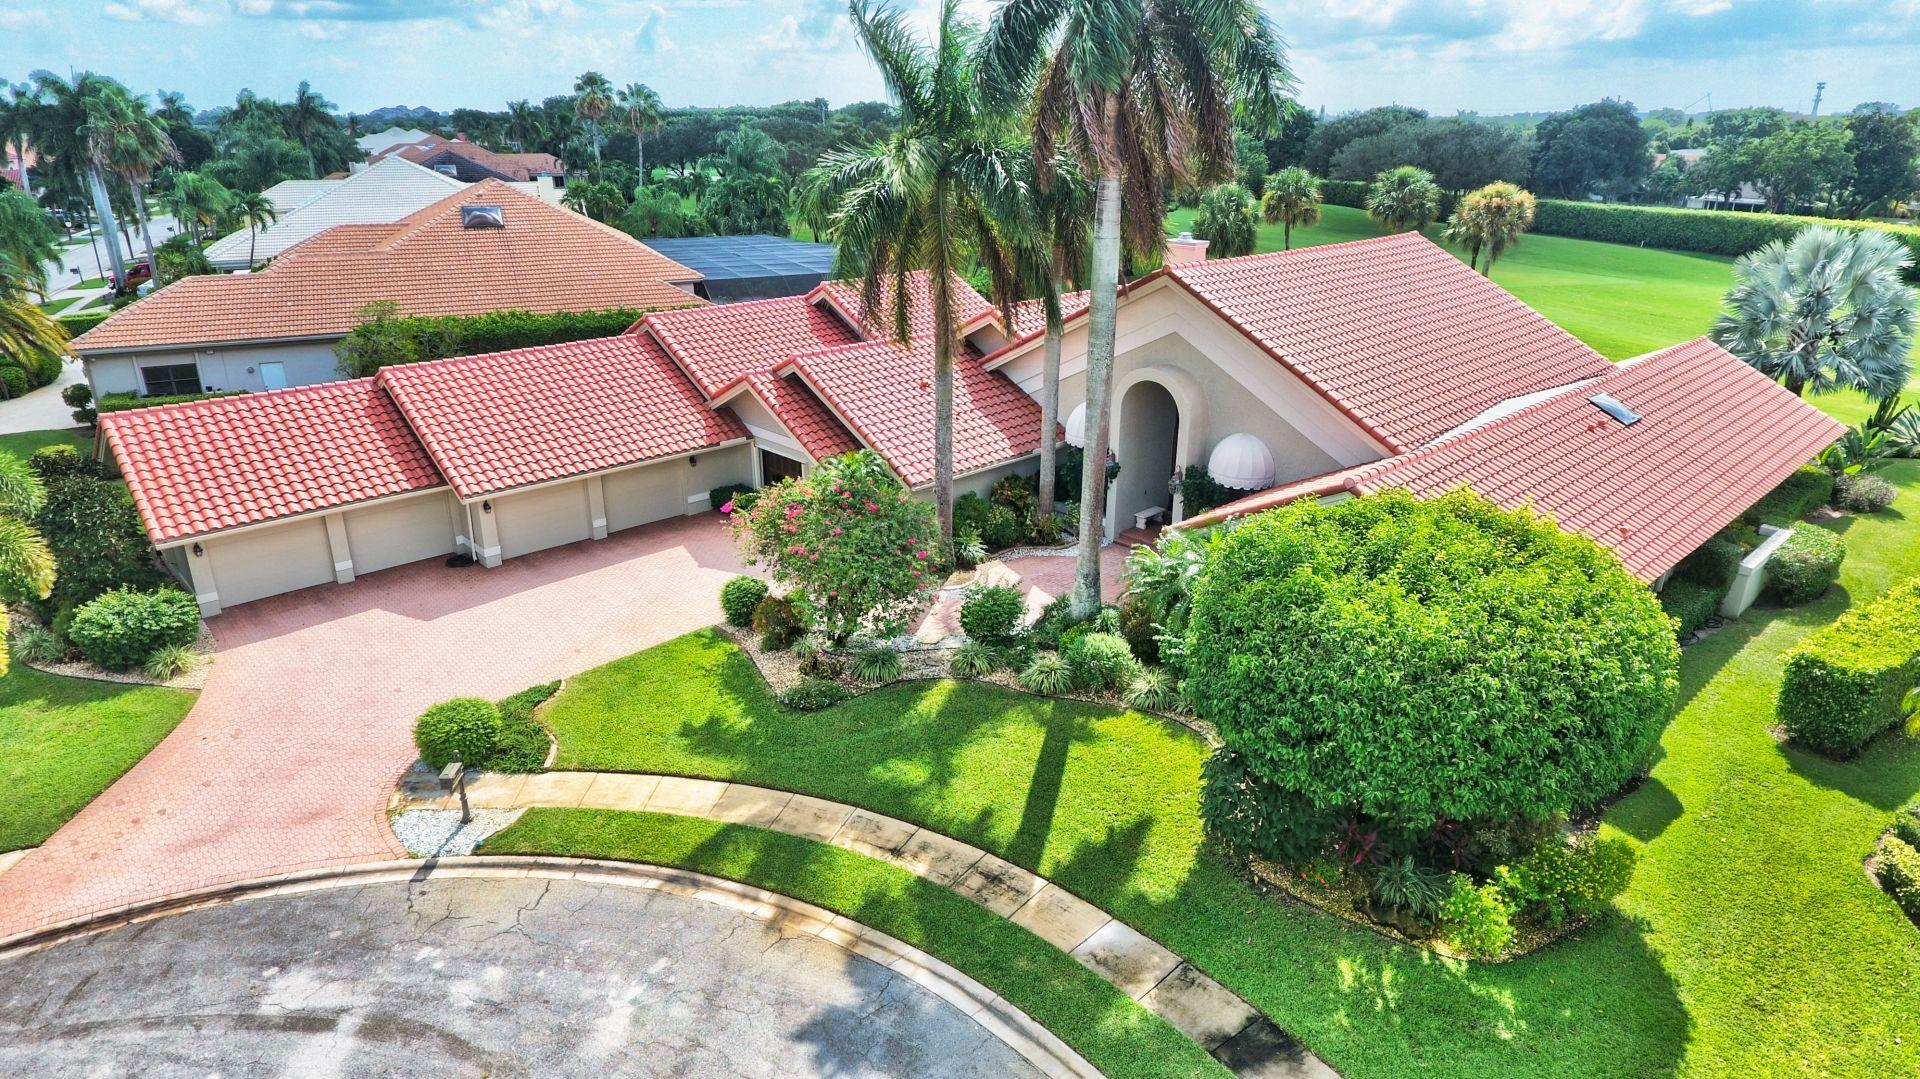 BOCAIRE COUNTRY CLUB REAL ESTATE